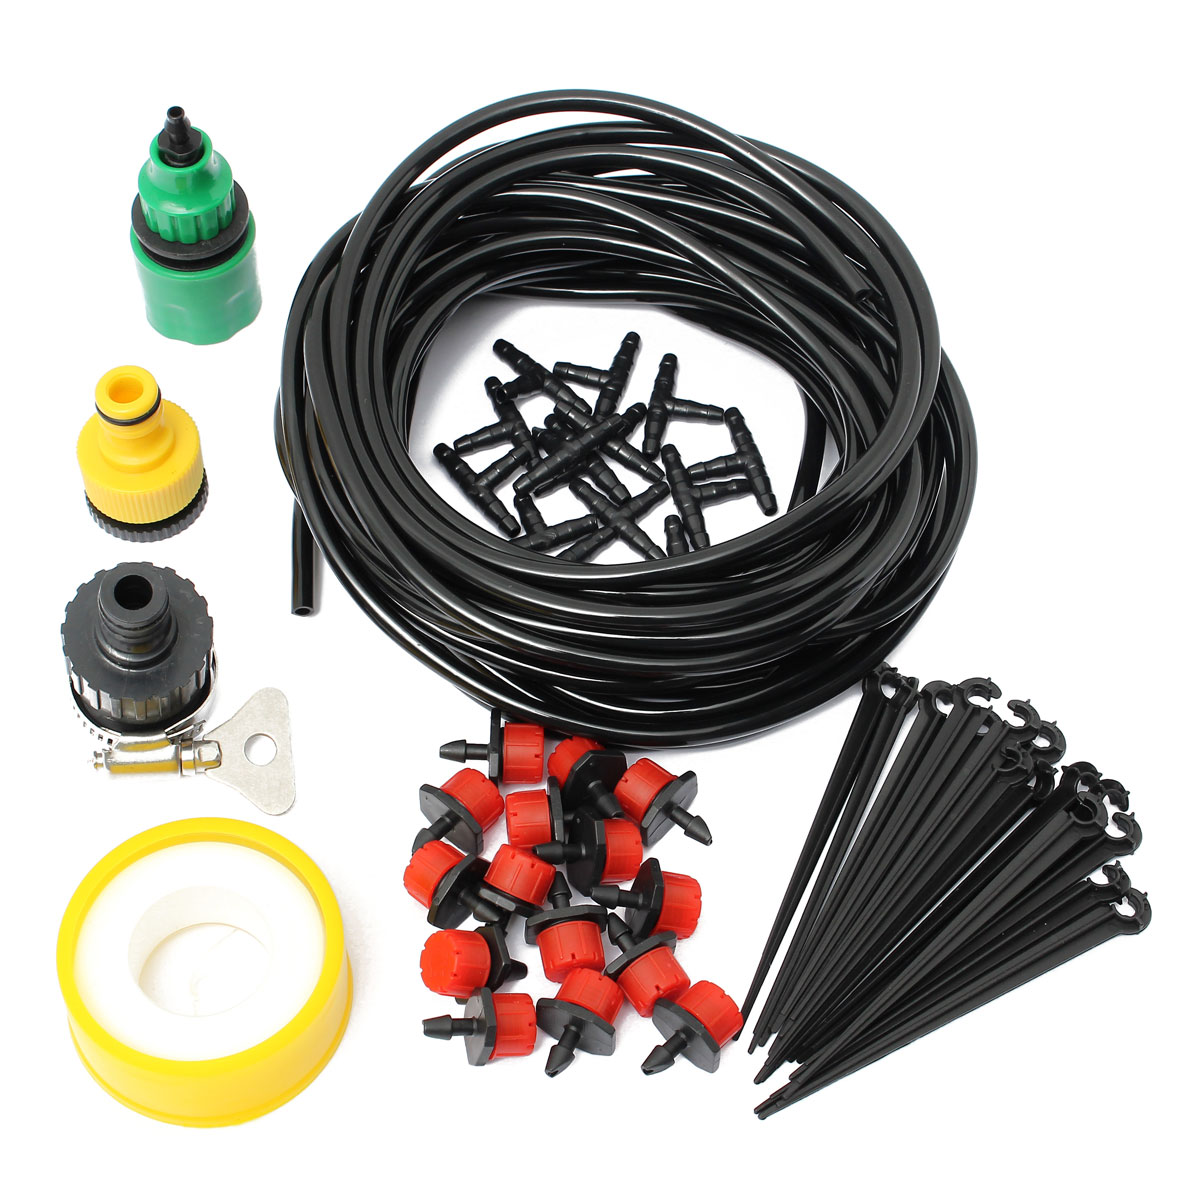 10m 32.8ft micro drop irrigation system atomization micro sprinkler cooling suite title=10m 32.8ft micro drop irrigation system atomization micro sprinkler cooling suite